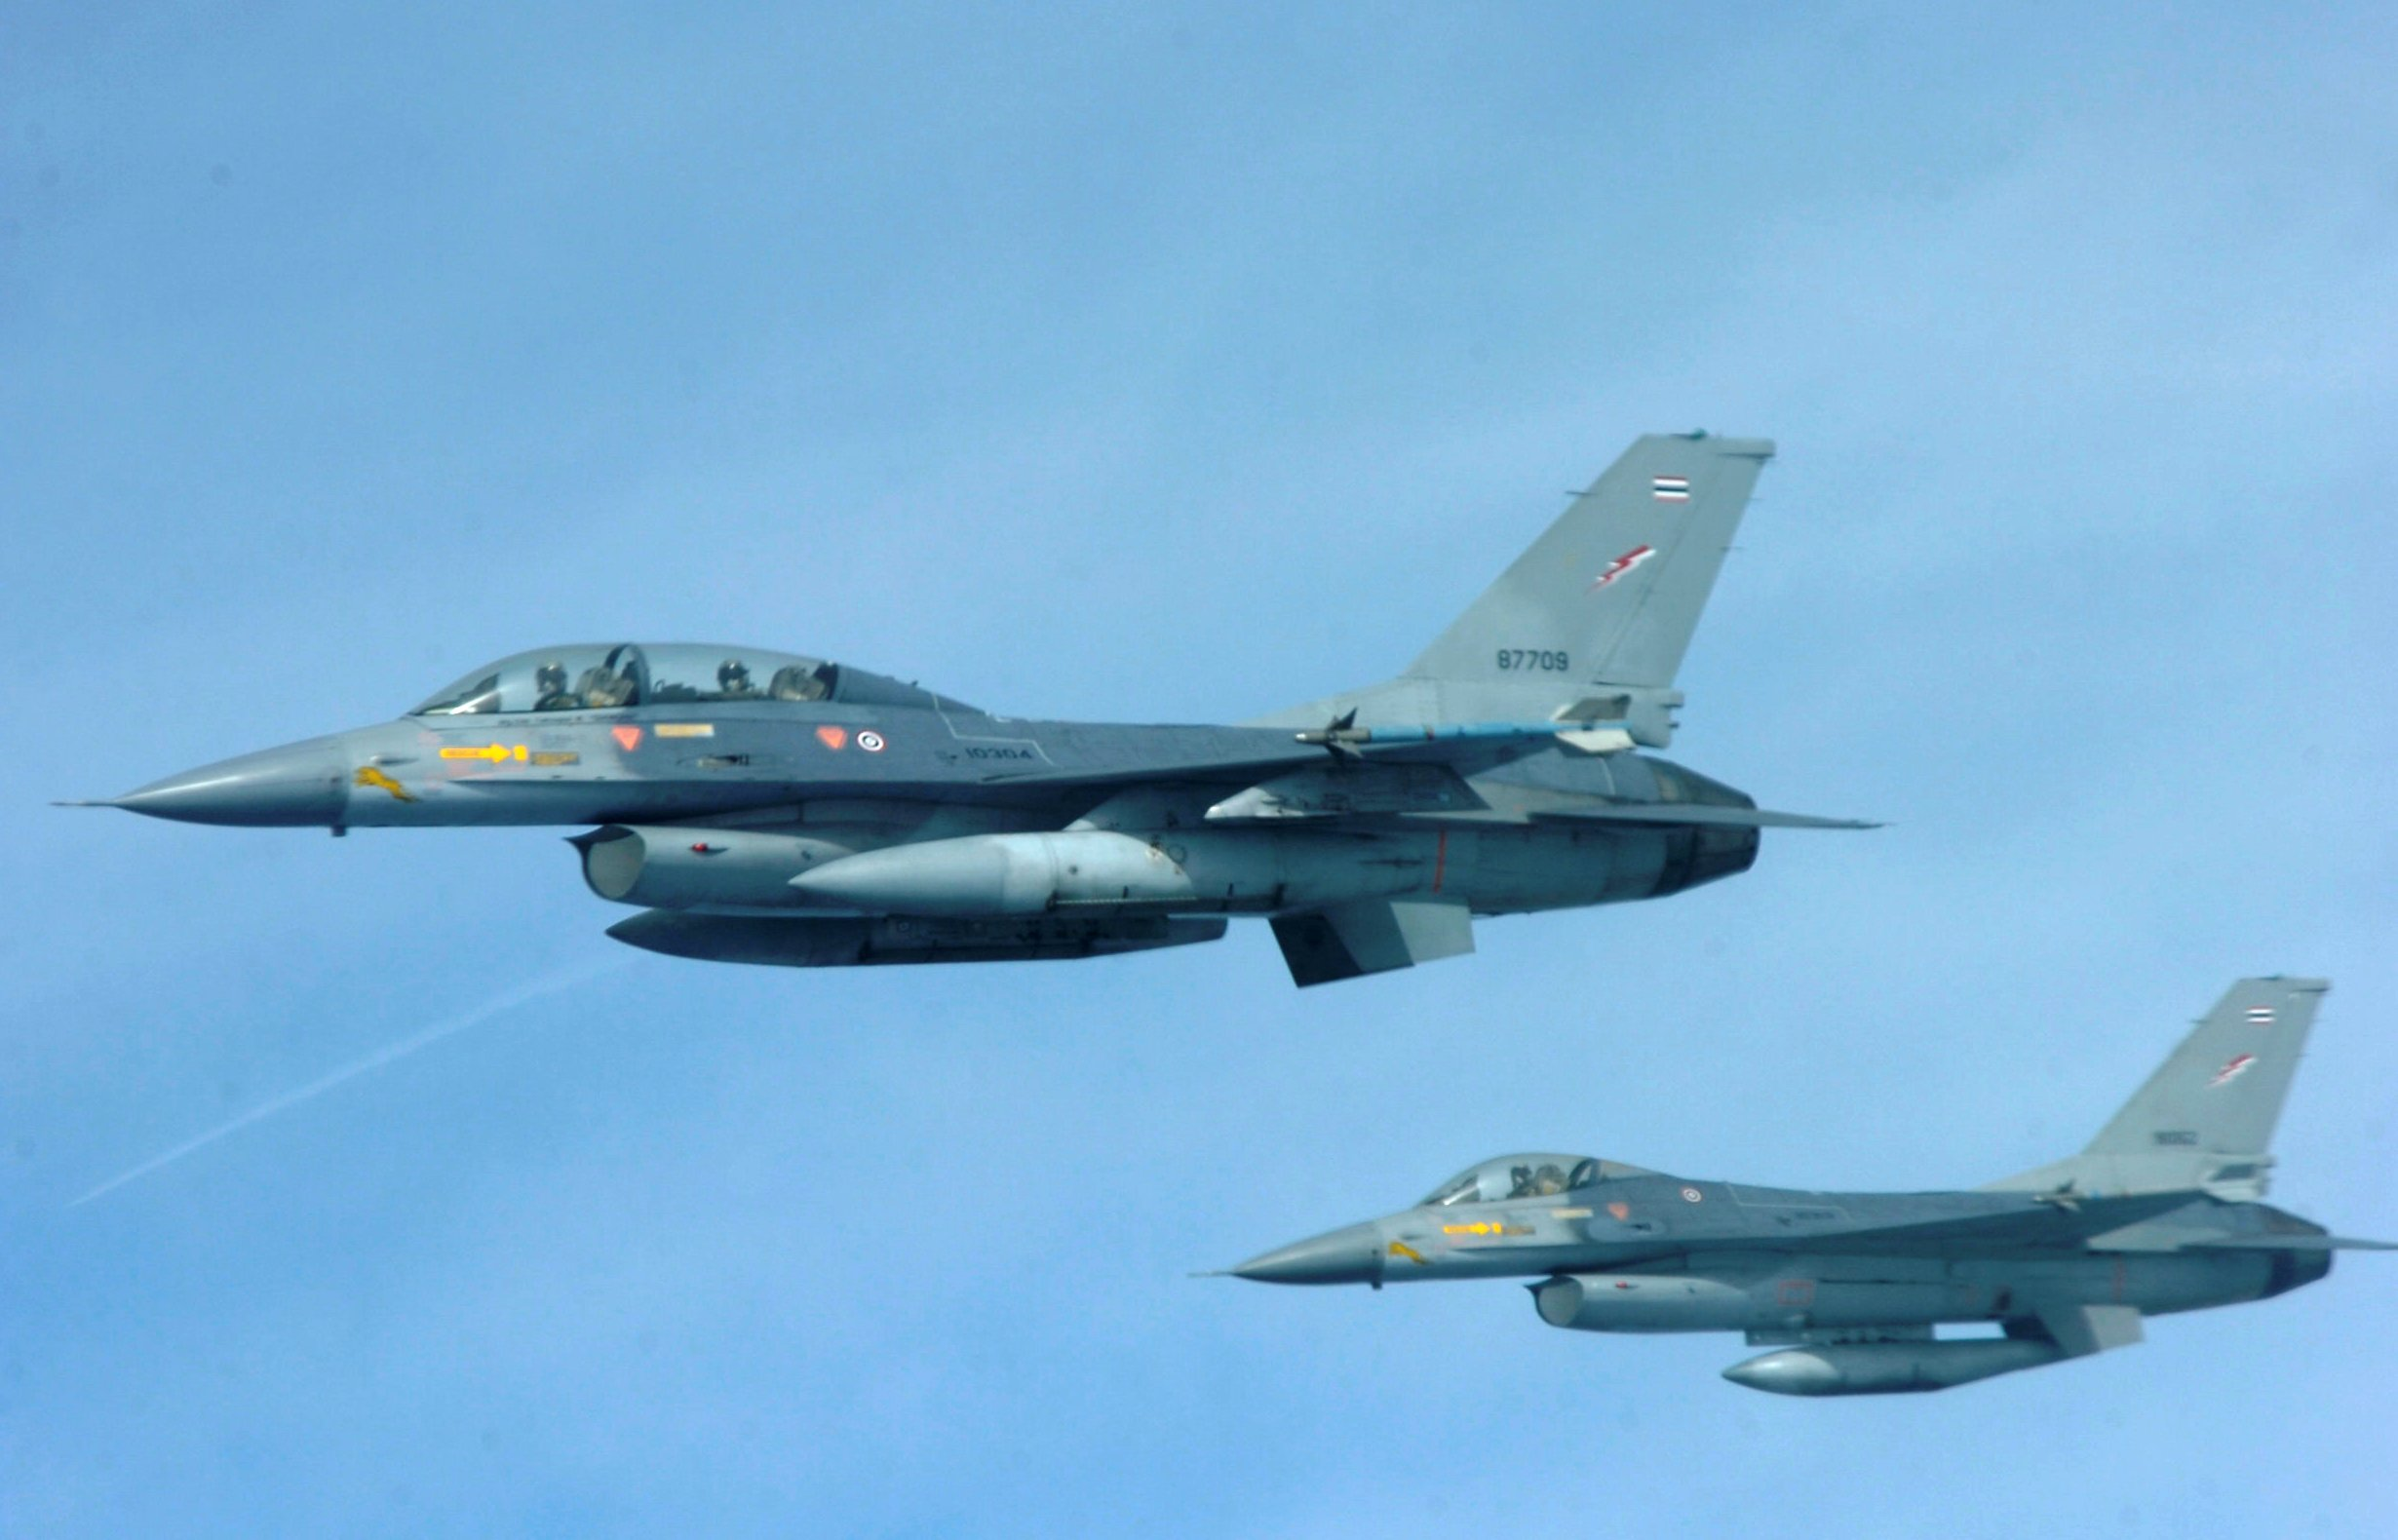 Usaf In Thailand http://nl.wikipedia.org/wiki/Bestand:Two_Royal_Thai_Air_Force_F-16_aircraft.JPG